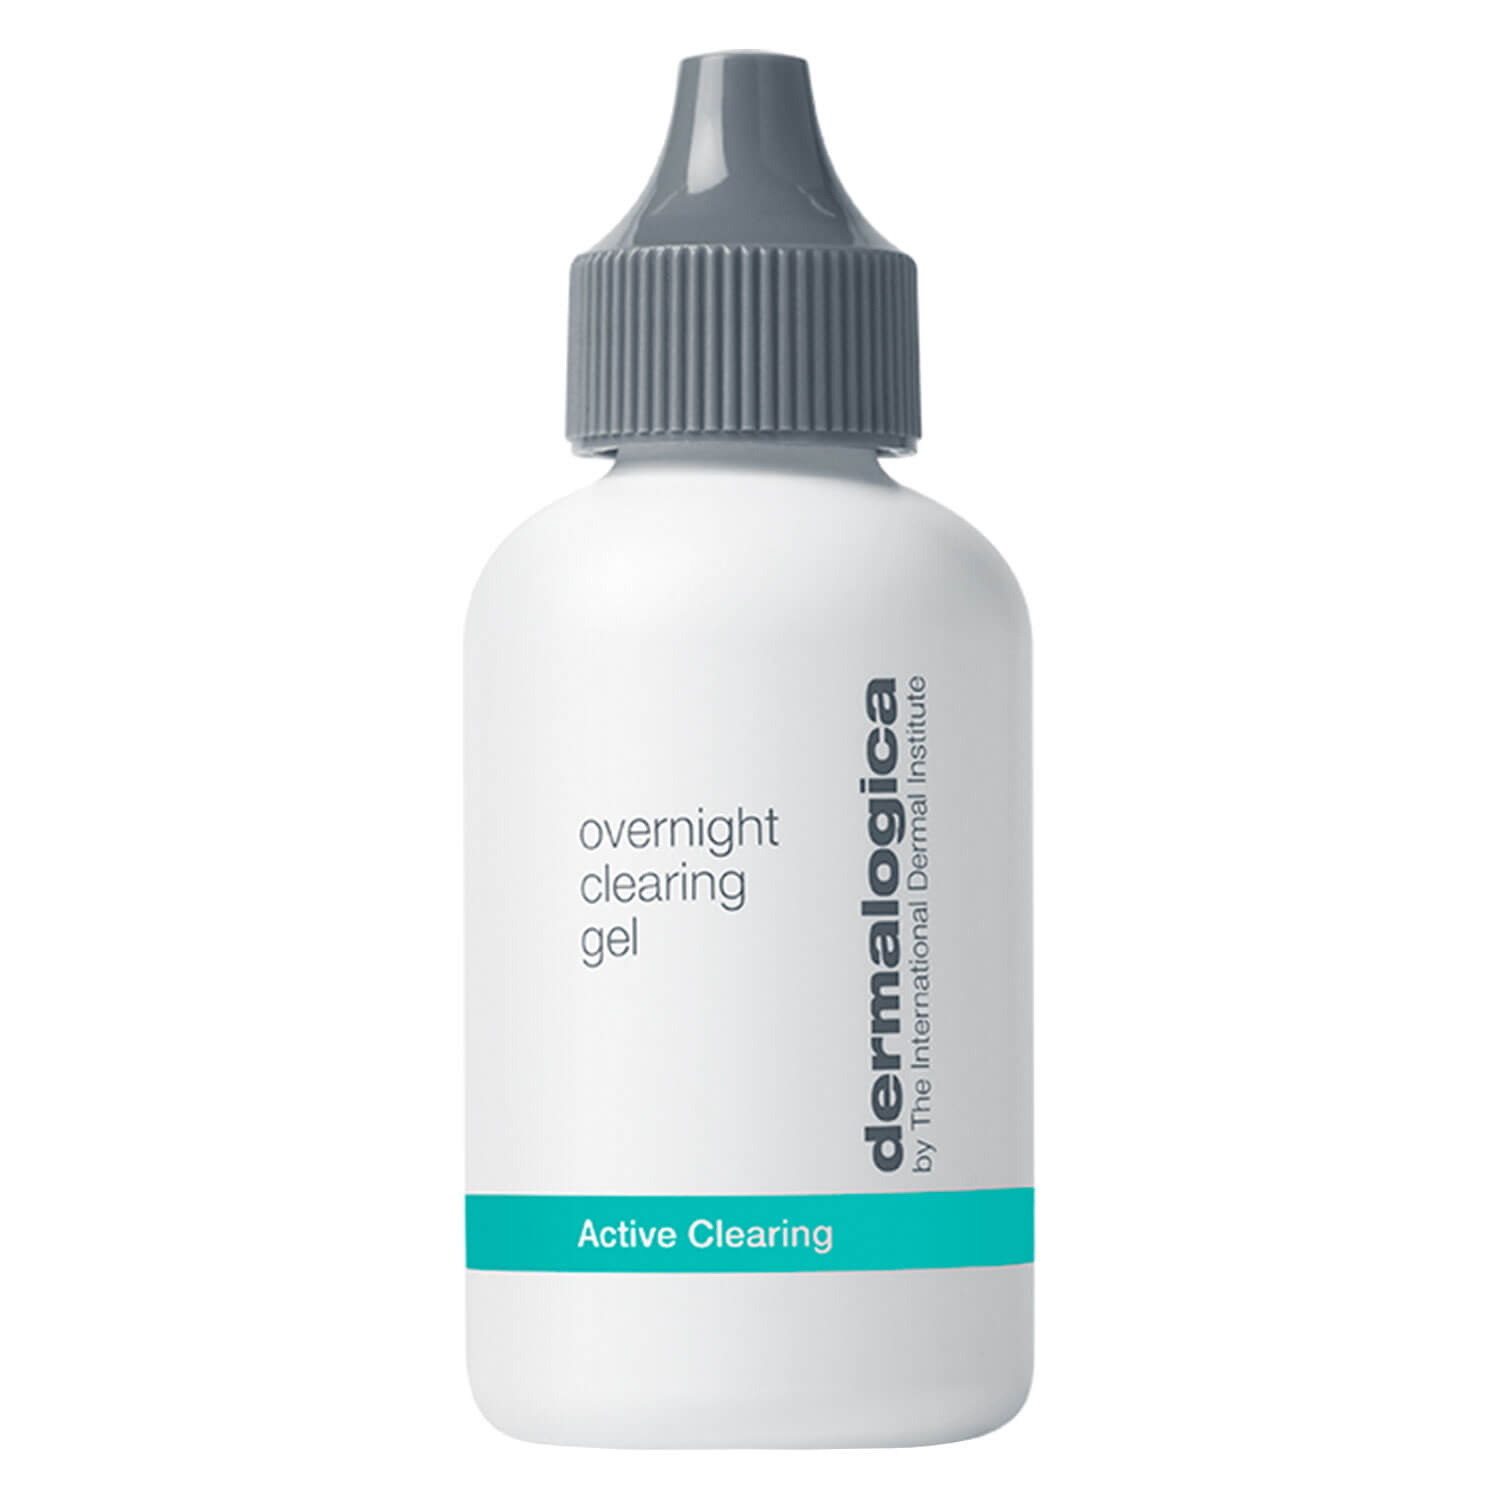 Active Clearing - Overnight Clearing Gel